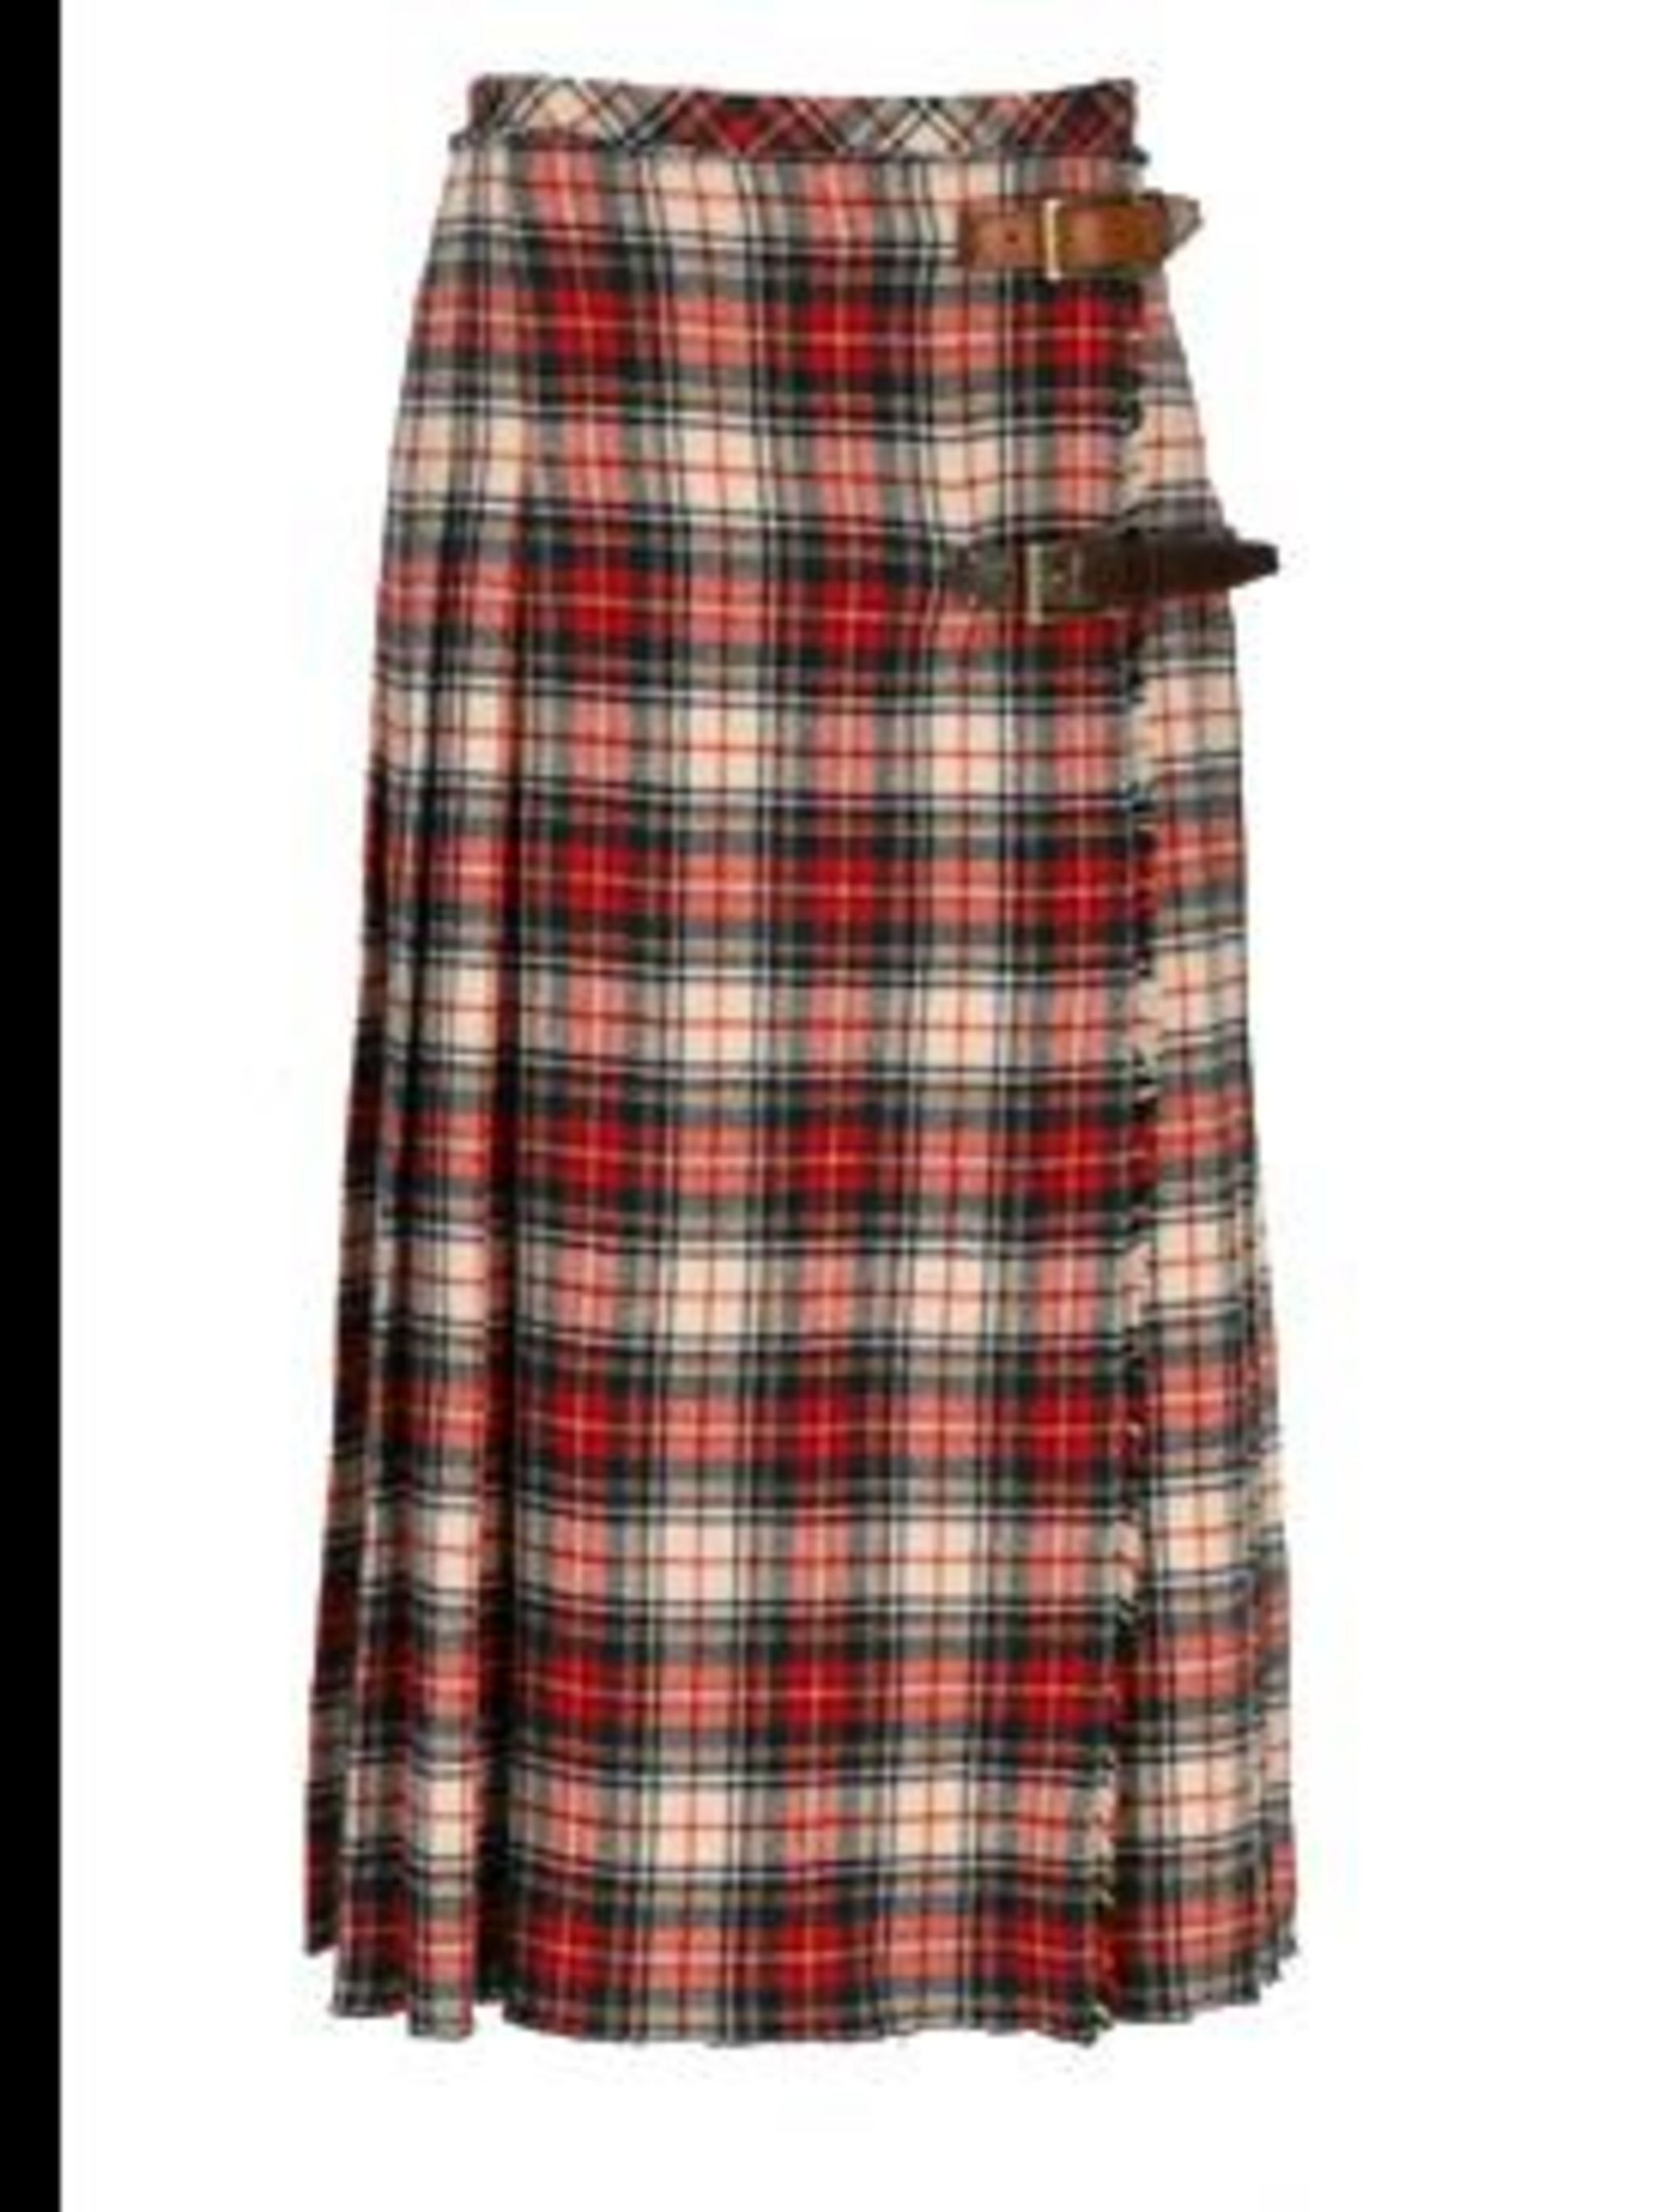 <p>Cream and red tartan wool skirt, £375, by D&G (0207 495 9250)</p>